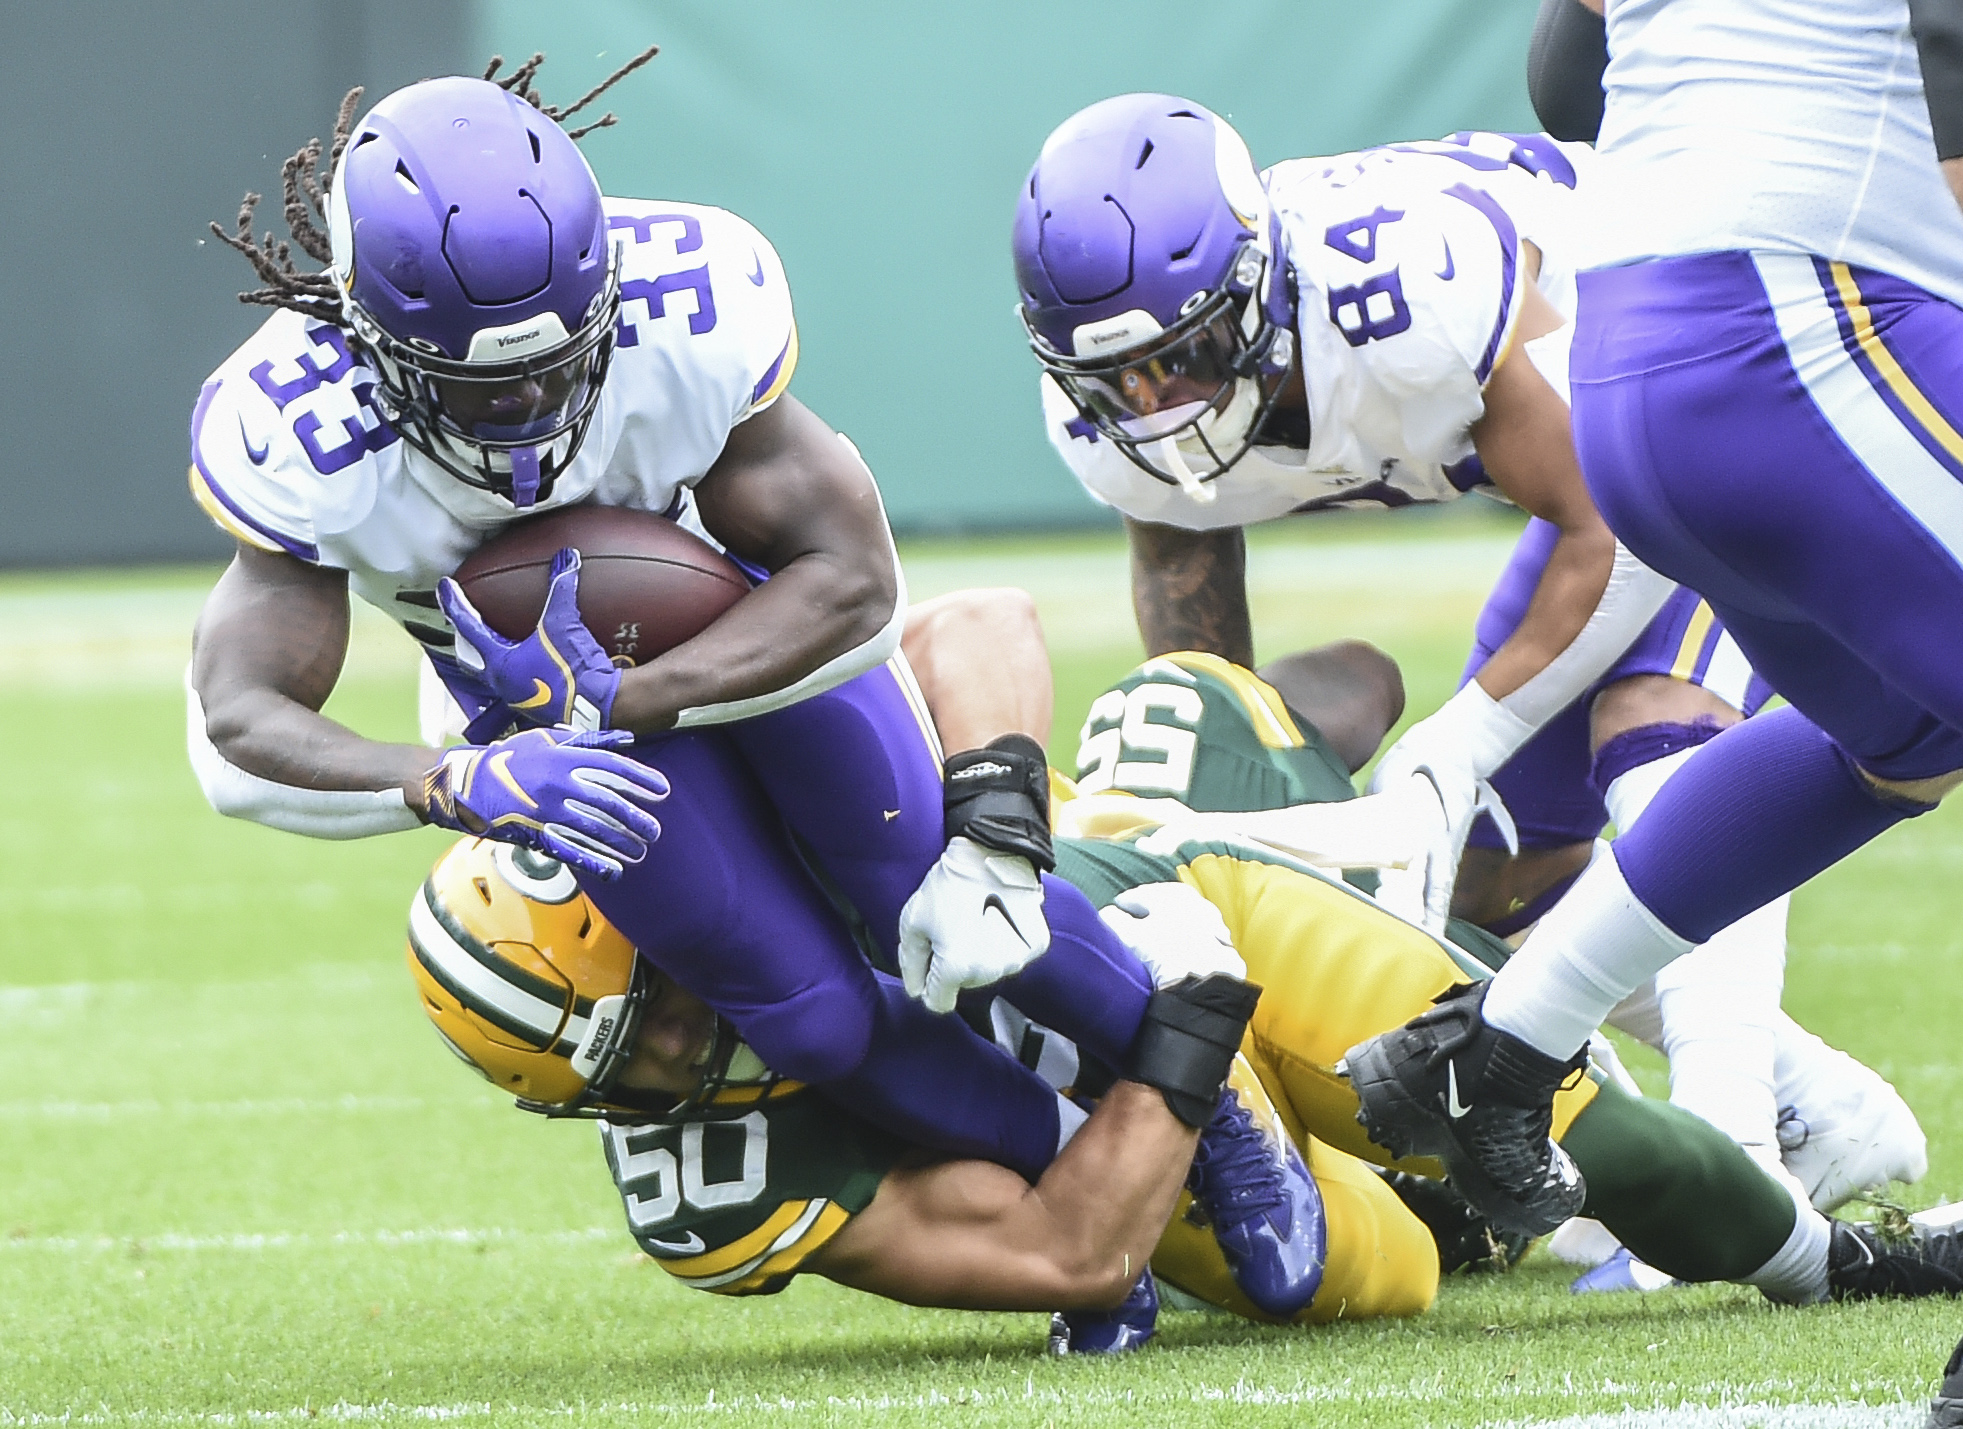 Sep 15, 2019; Green Bay, WI, USA;  Minnesota Vikings running back Dalvin Cook (33) is tackled by Green Bay Packers linebacker Blake Martinez (50) in the first quarter at Lambeau Field. Mandatory Credit: Benny Sieu-USA TODAY Sports